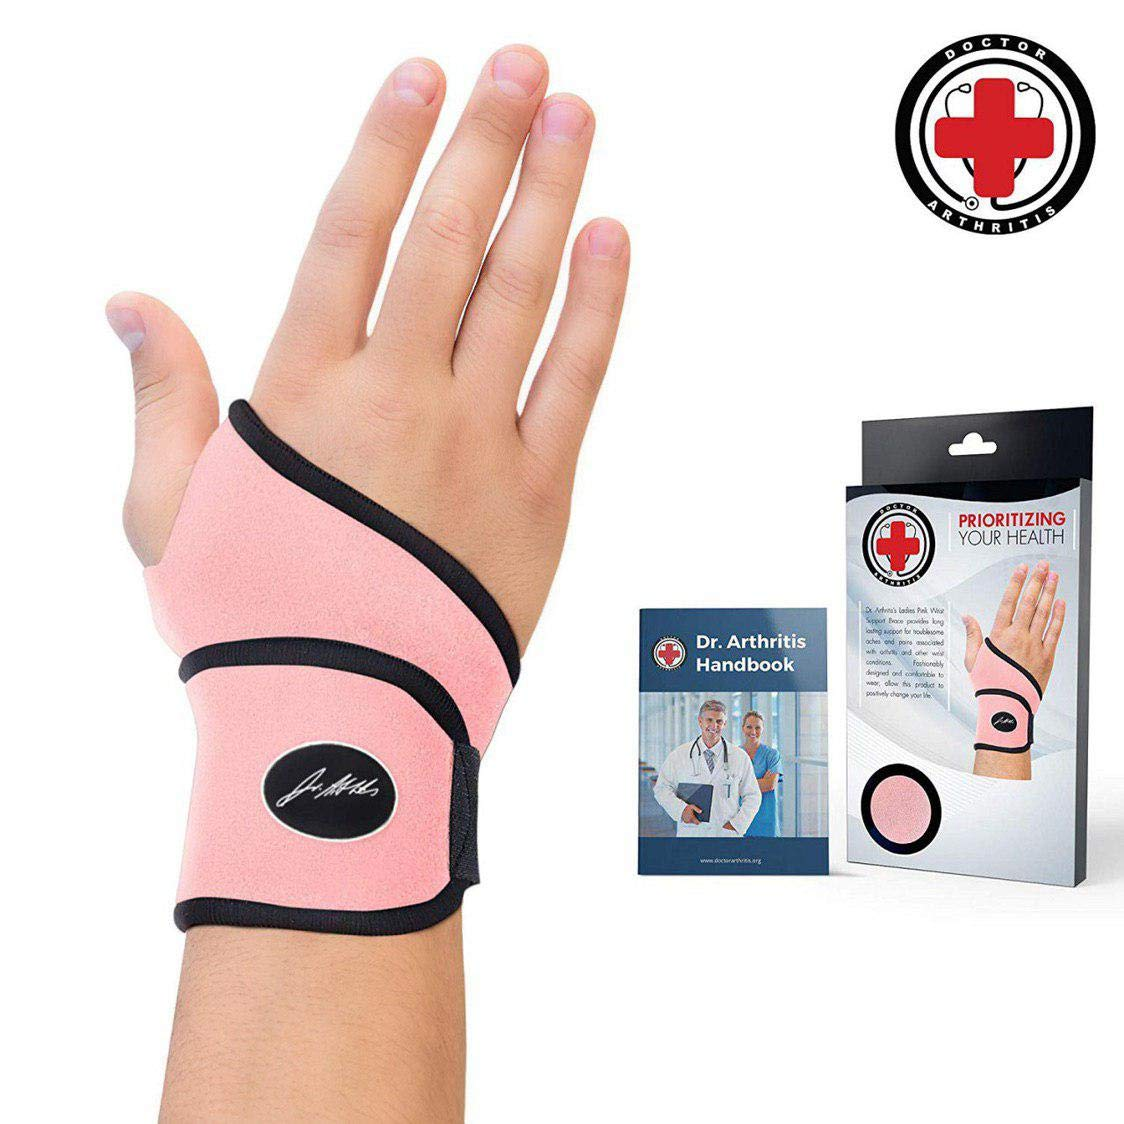 Doctor Developed Premium Ladies Pink Wrist Support/Wrist Strap/Wrist Brace/Hand Support [Single]& Doctor Written Handbook- Suitable for Both Right and Left Hands (Pink) by Dr. Arthritis